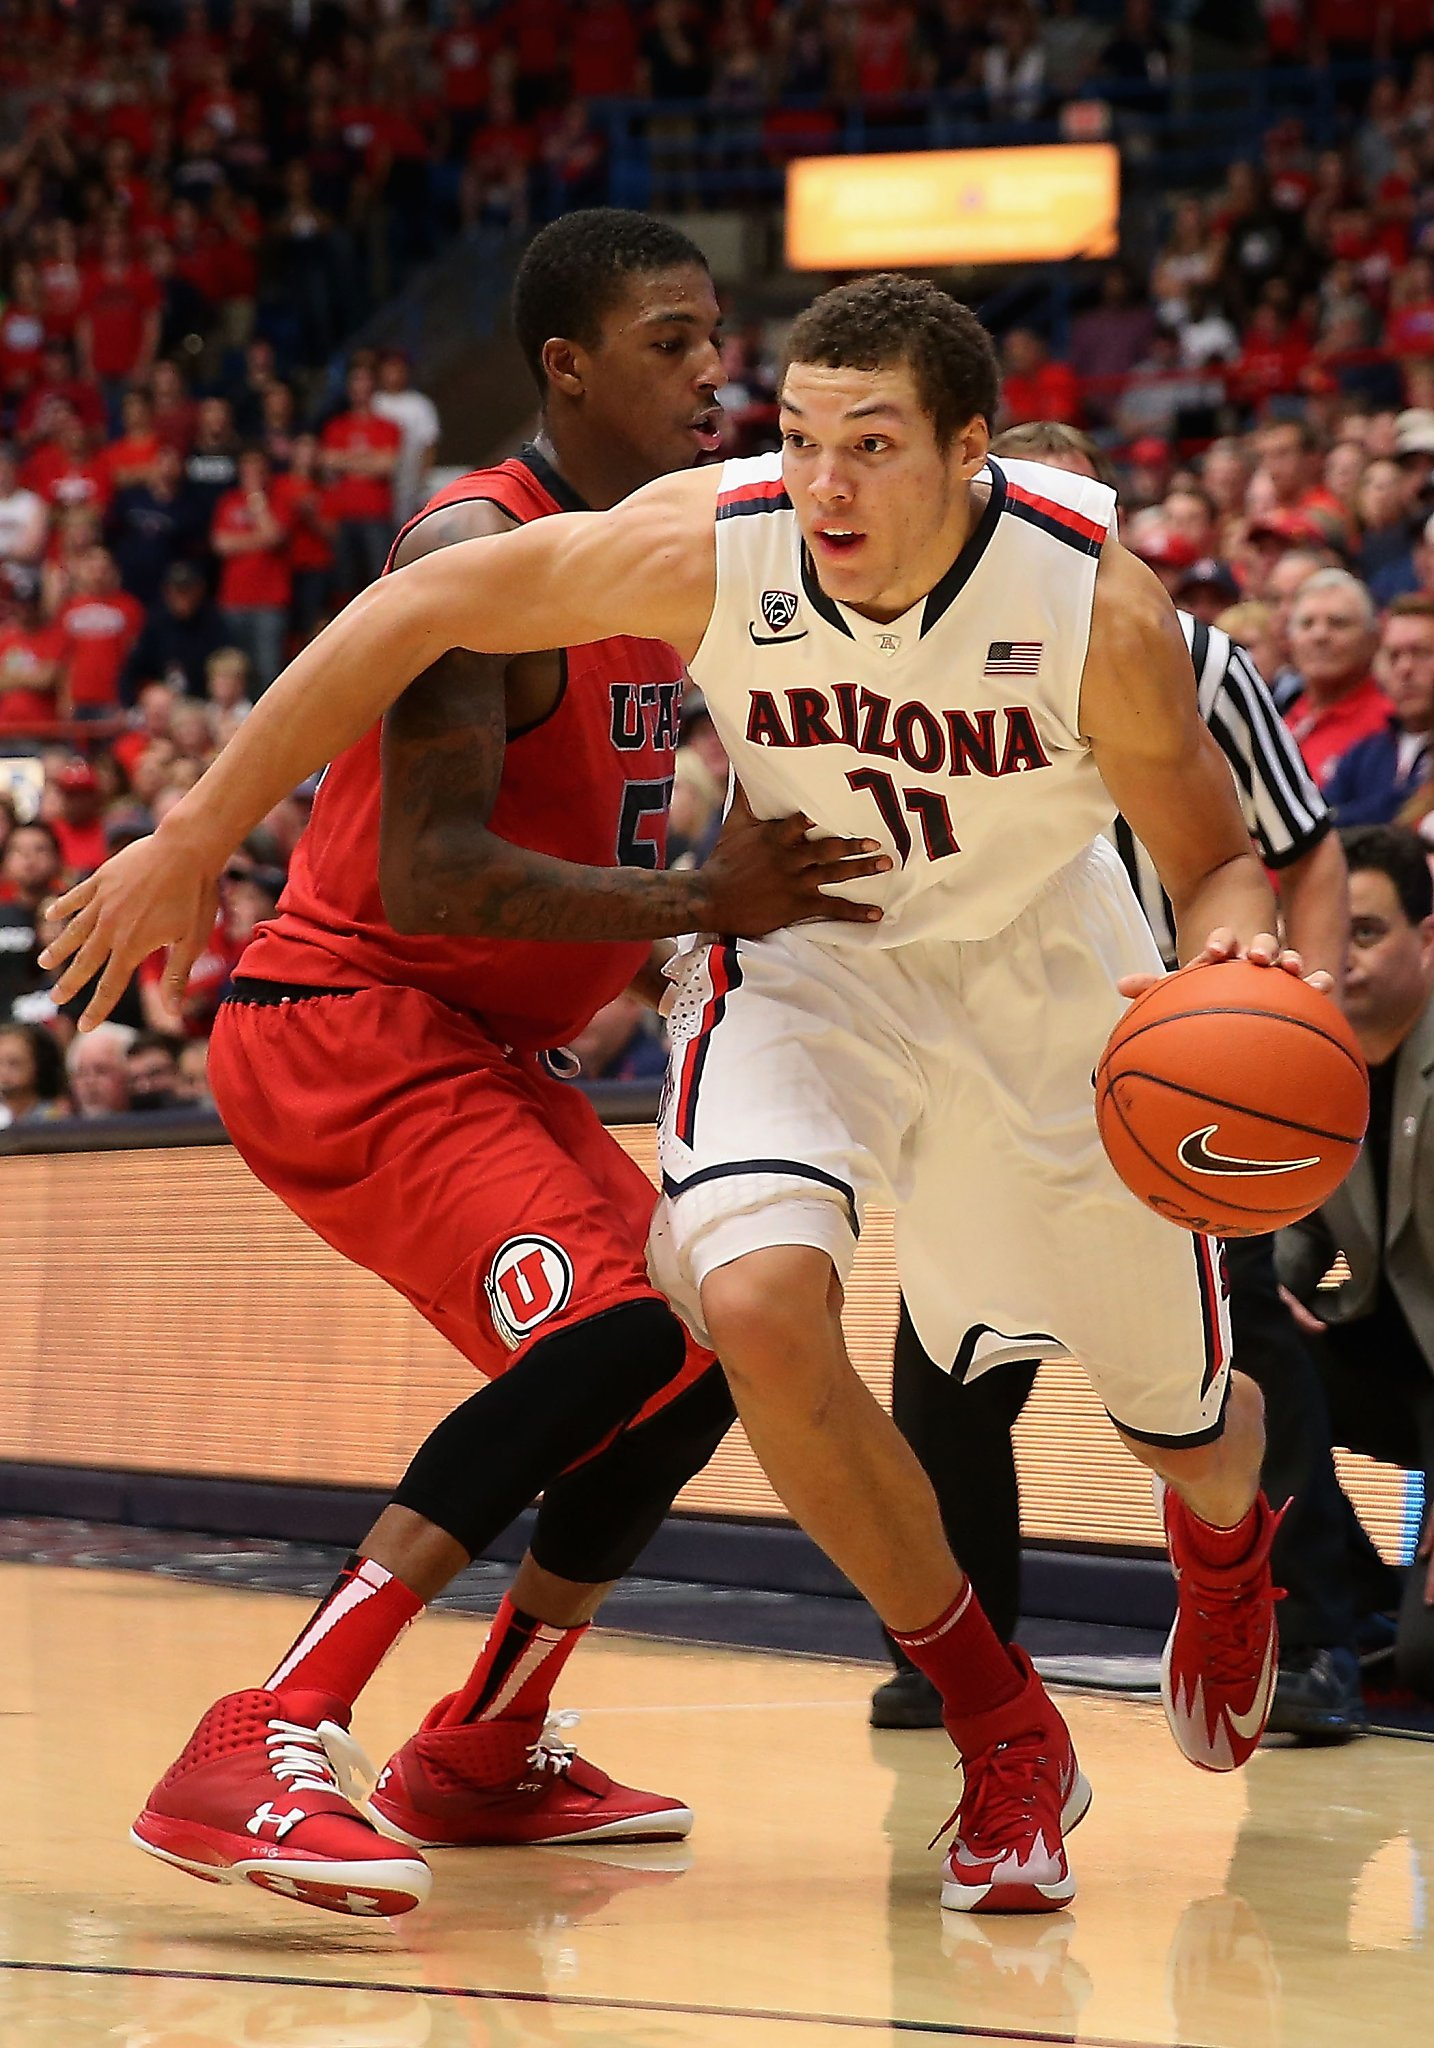 premium selection 044e6 3842b Aaron Gordon, No. 1 Arizona play at Stanford - SFGate